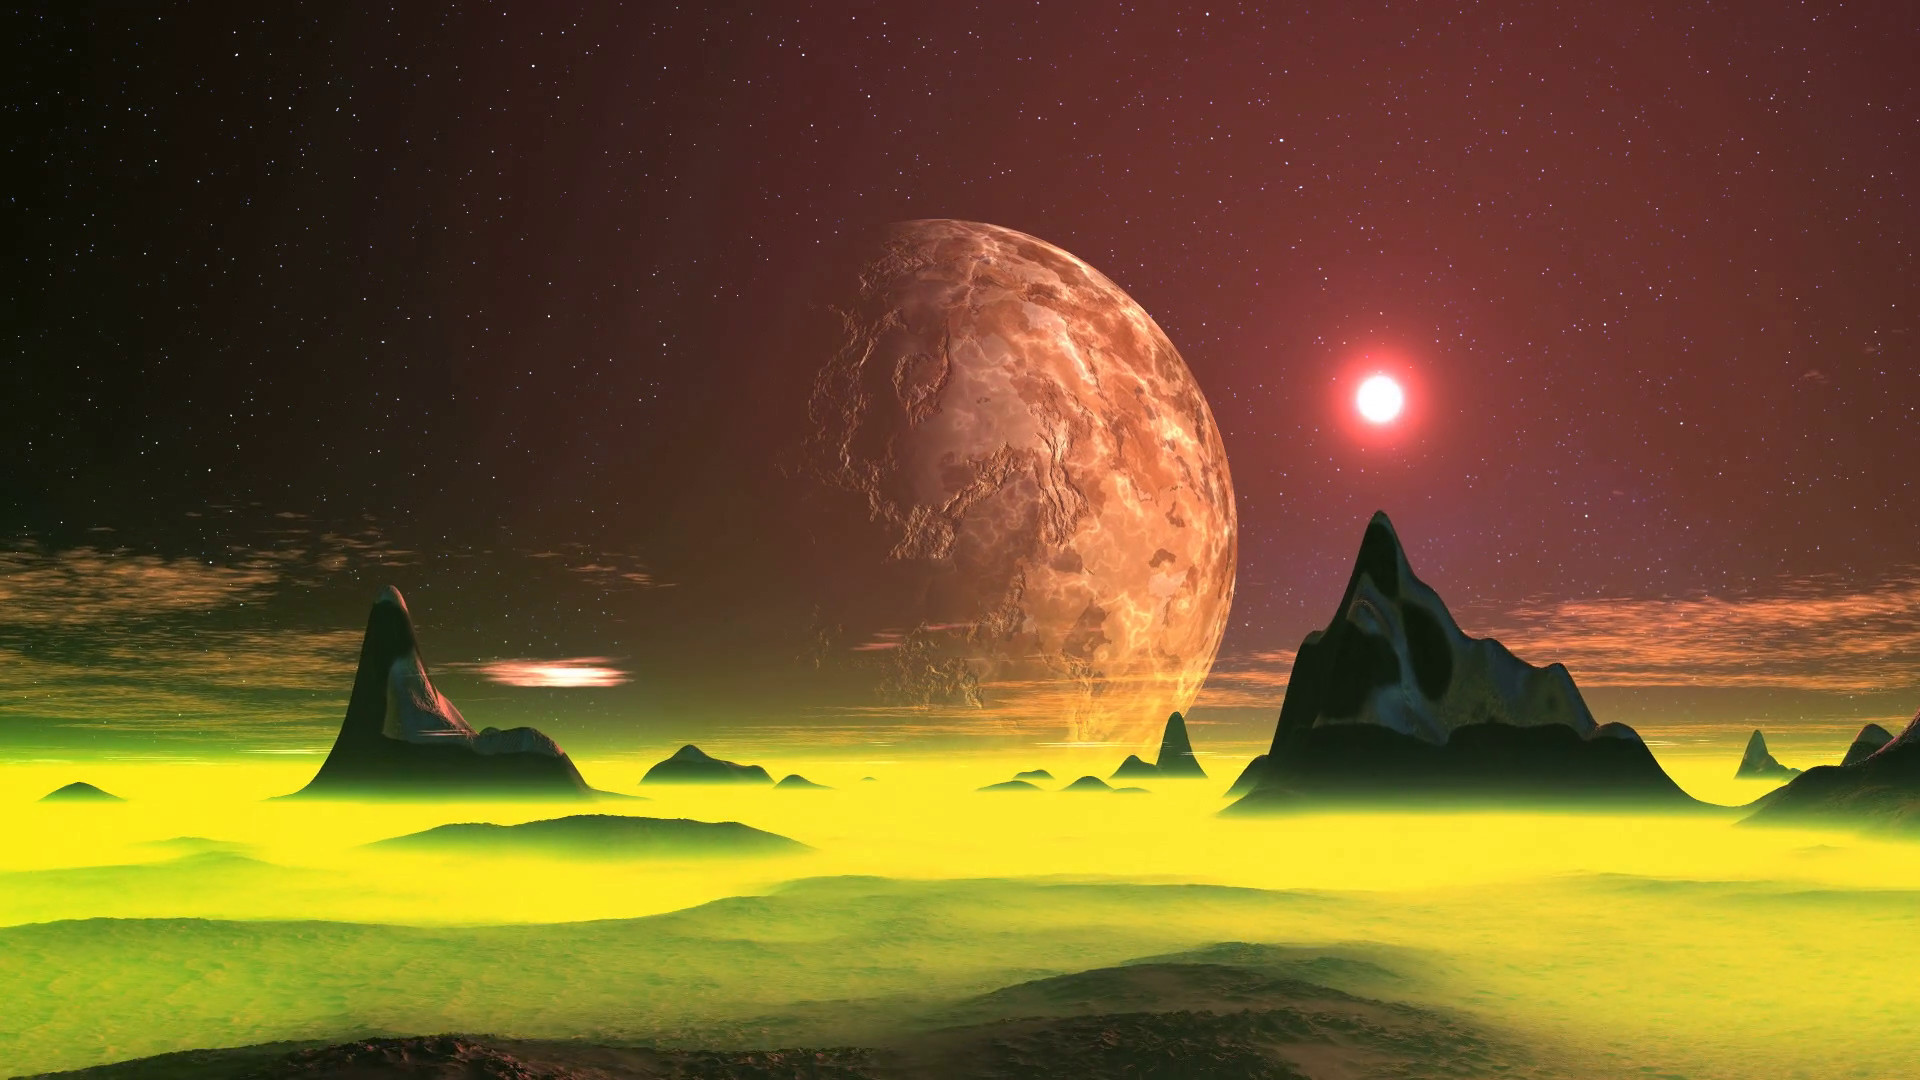 On a dark starry sky rotates huge planet. Bright sun in an orange halo  quickly sets over the horizon of an alien planet. Desert landscape covered  with …